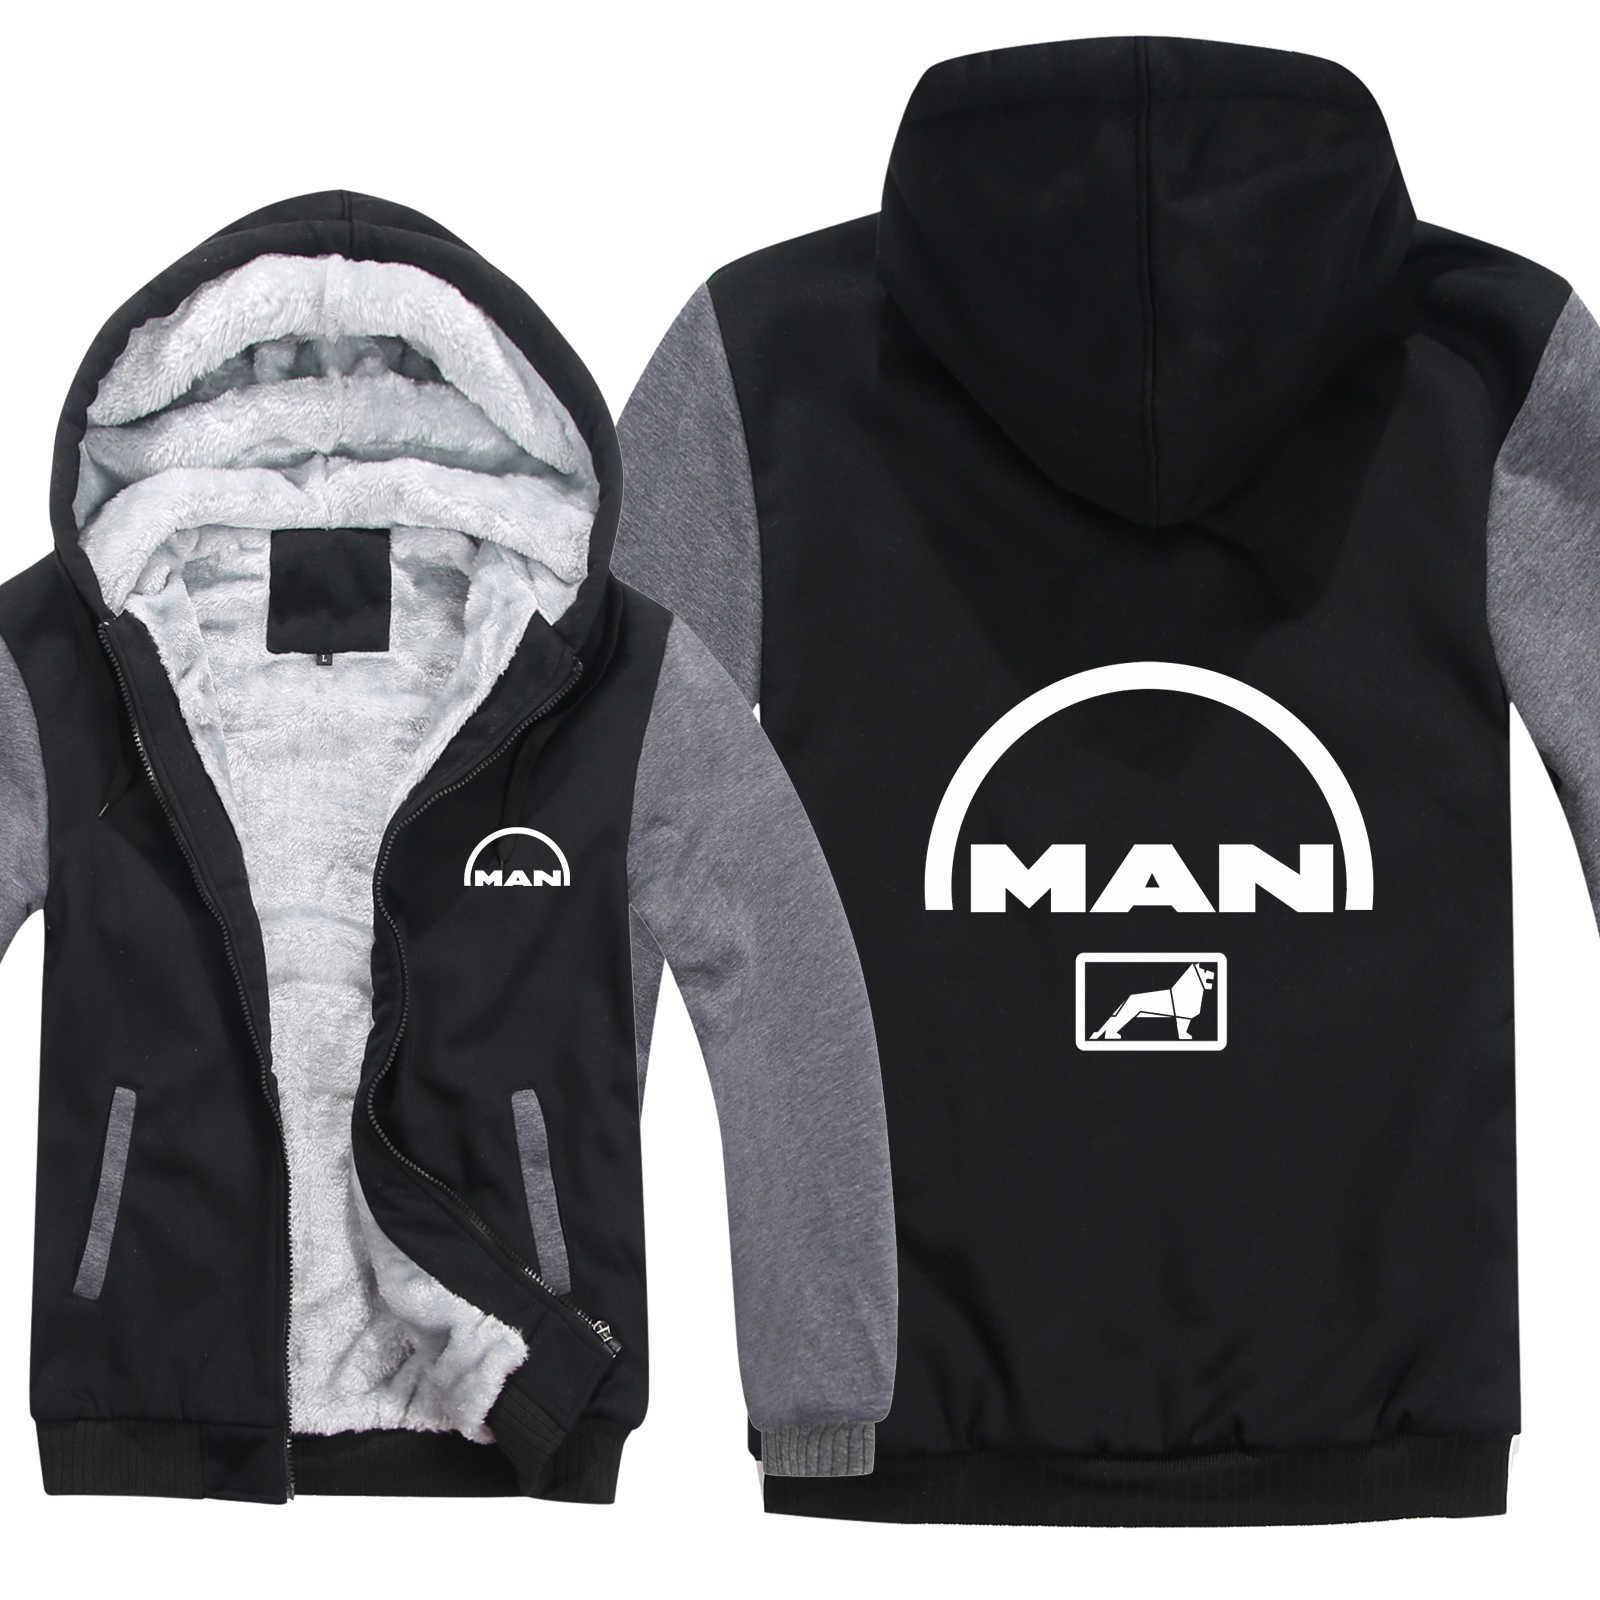 MAN Truck Hoodies Men Fashion Coat Pullover Wool Liner Jacket MAN Truck Sweatshirts Hoody HS-012 V191105